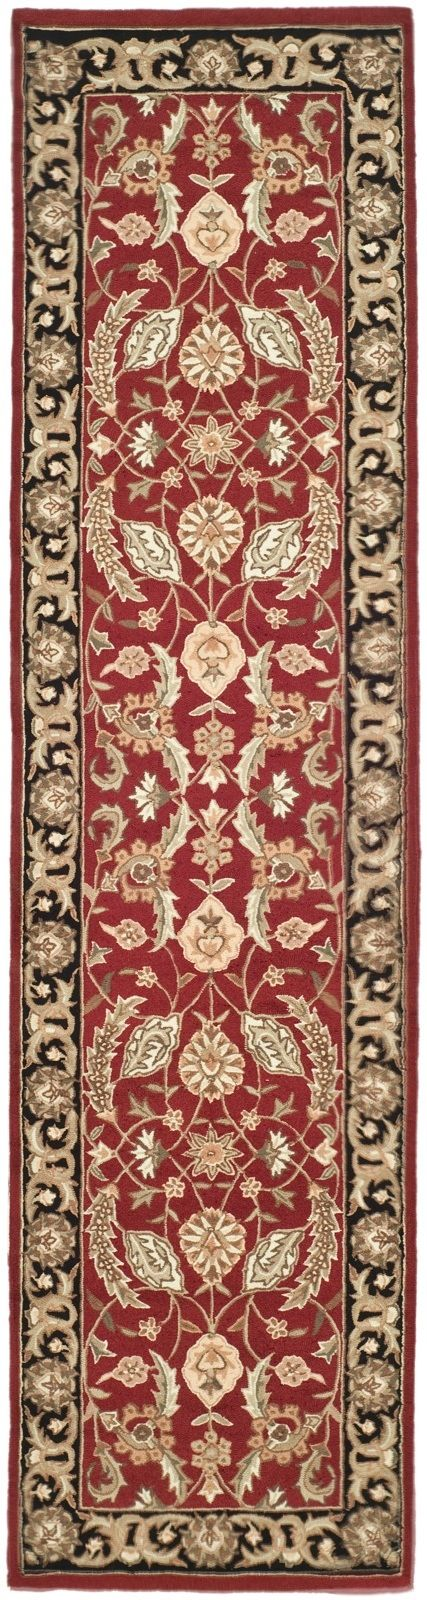 safavieh durarug traditional area rug collection